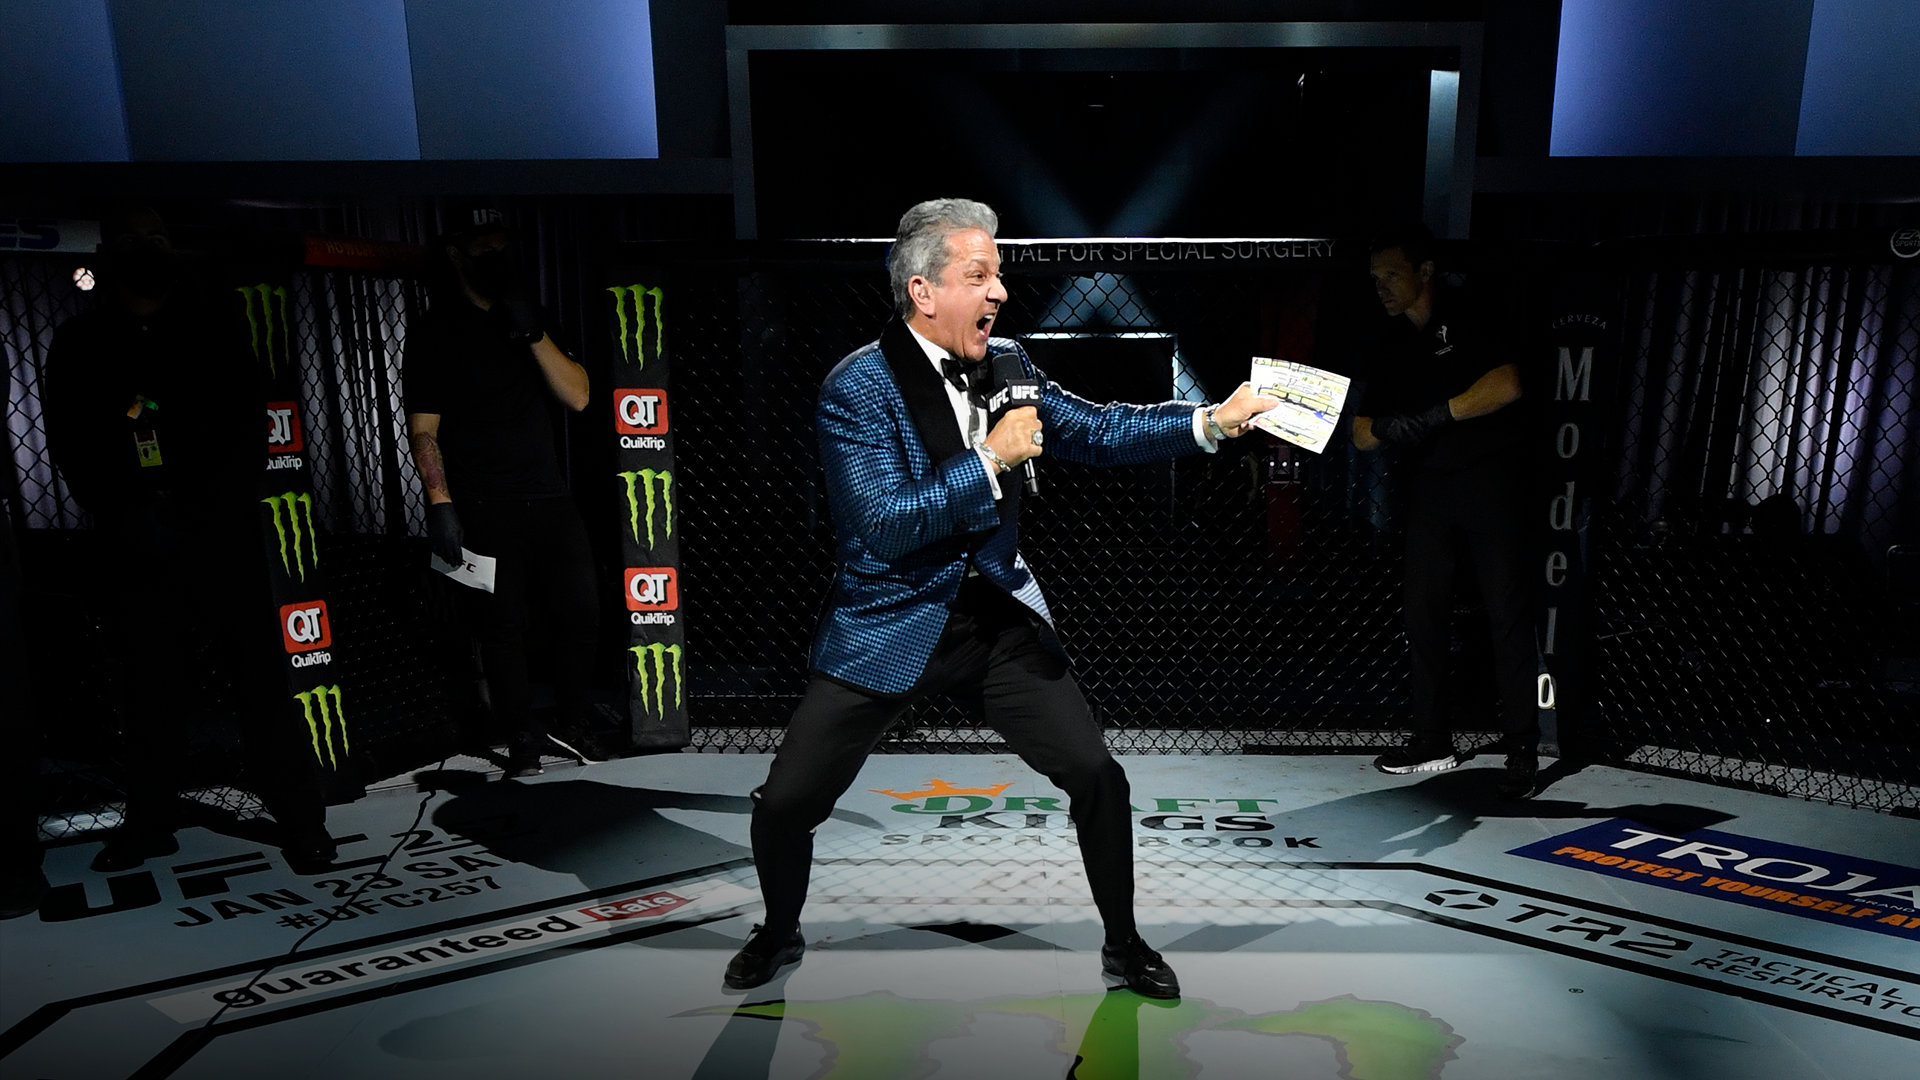 Octagon Announcer Bruce Buffer introduces the flyweight championship bout during the UFC 256 event at UFC APEX on December 12, 2020 in Las Vegas, Nevada. (Photo by Jeff Bottari/Zuffa LLC)